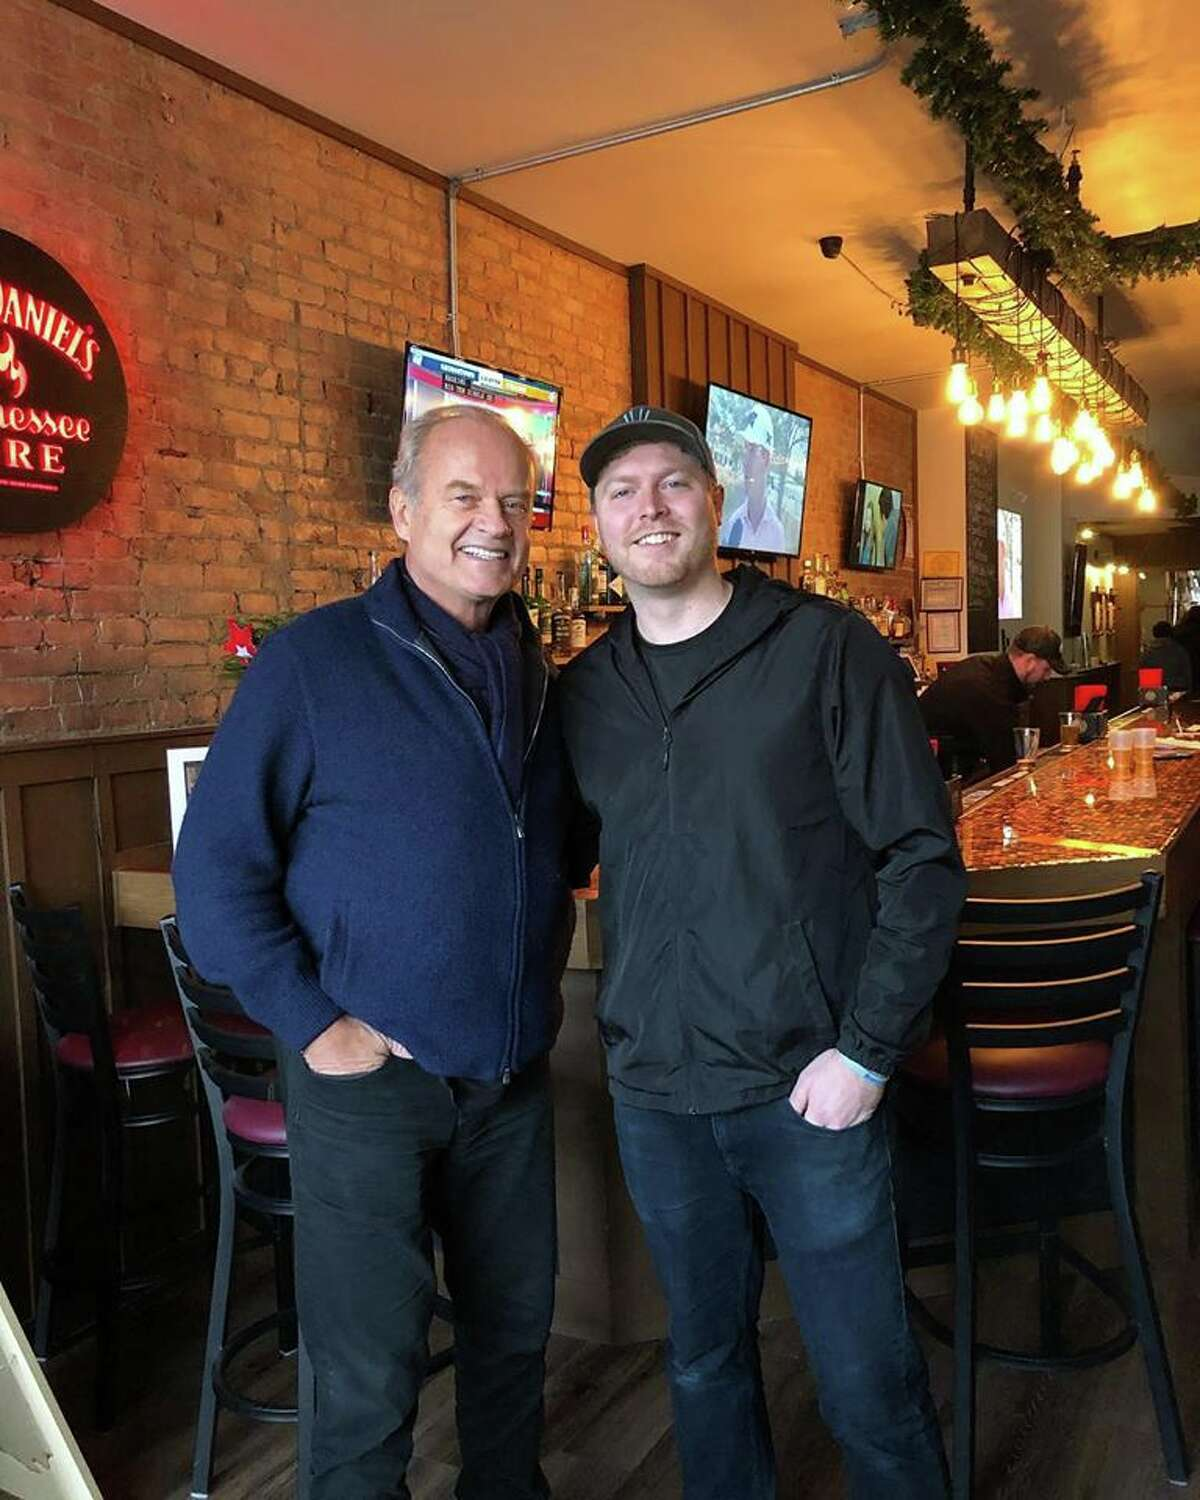 Kelsey Grammer was in Schenectady on Sunday, Dec. 9, 2018, to visit the Jay Street Pub, one of the locations that serves the actor's beer.